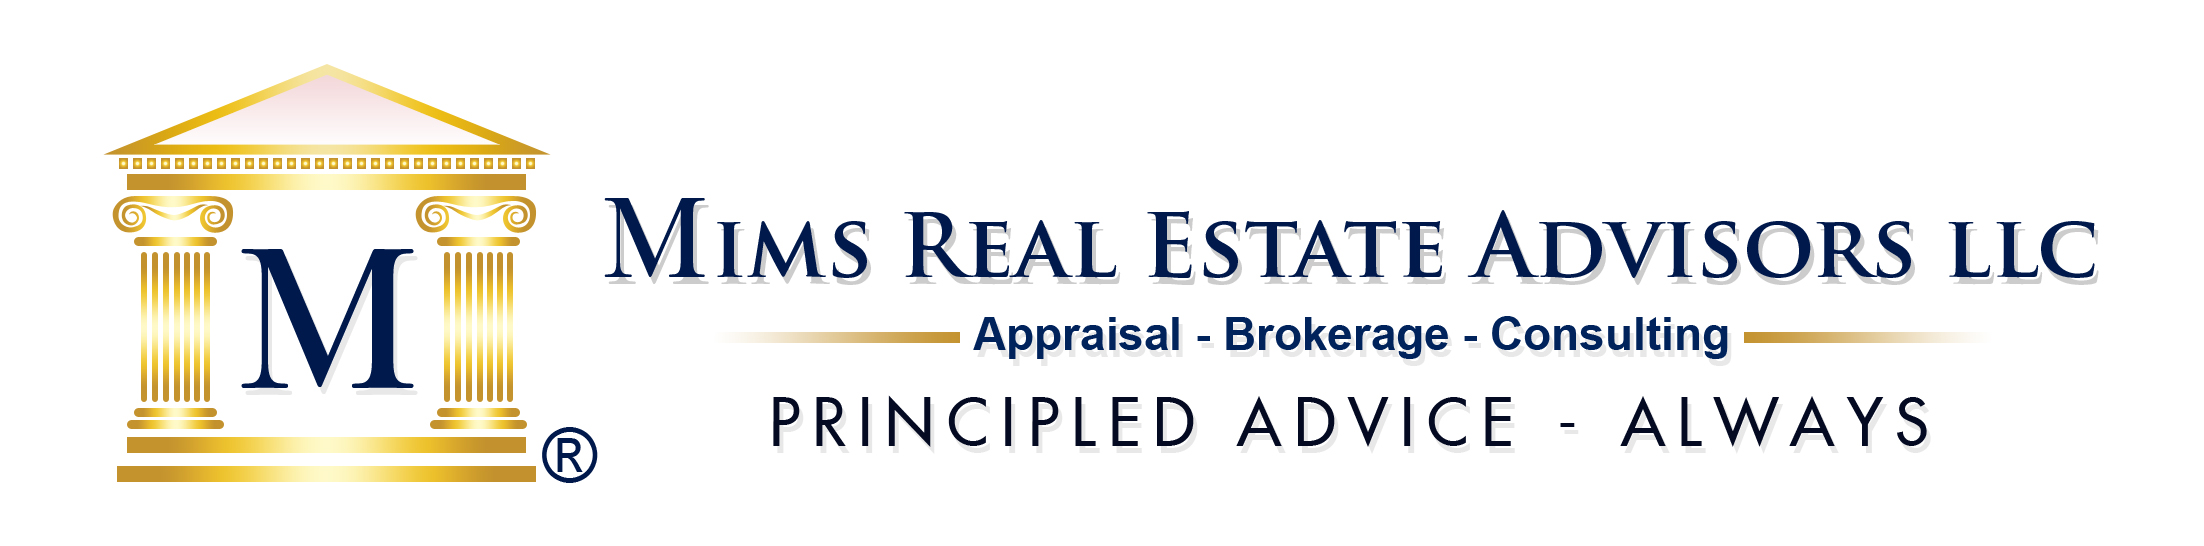 Mims Real Estate Advisors, LLC Logo